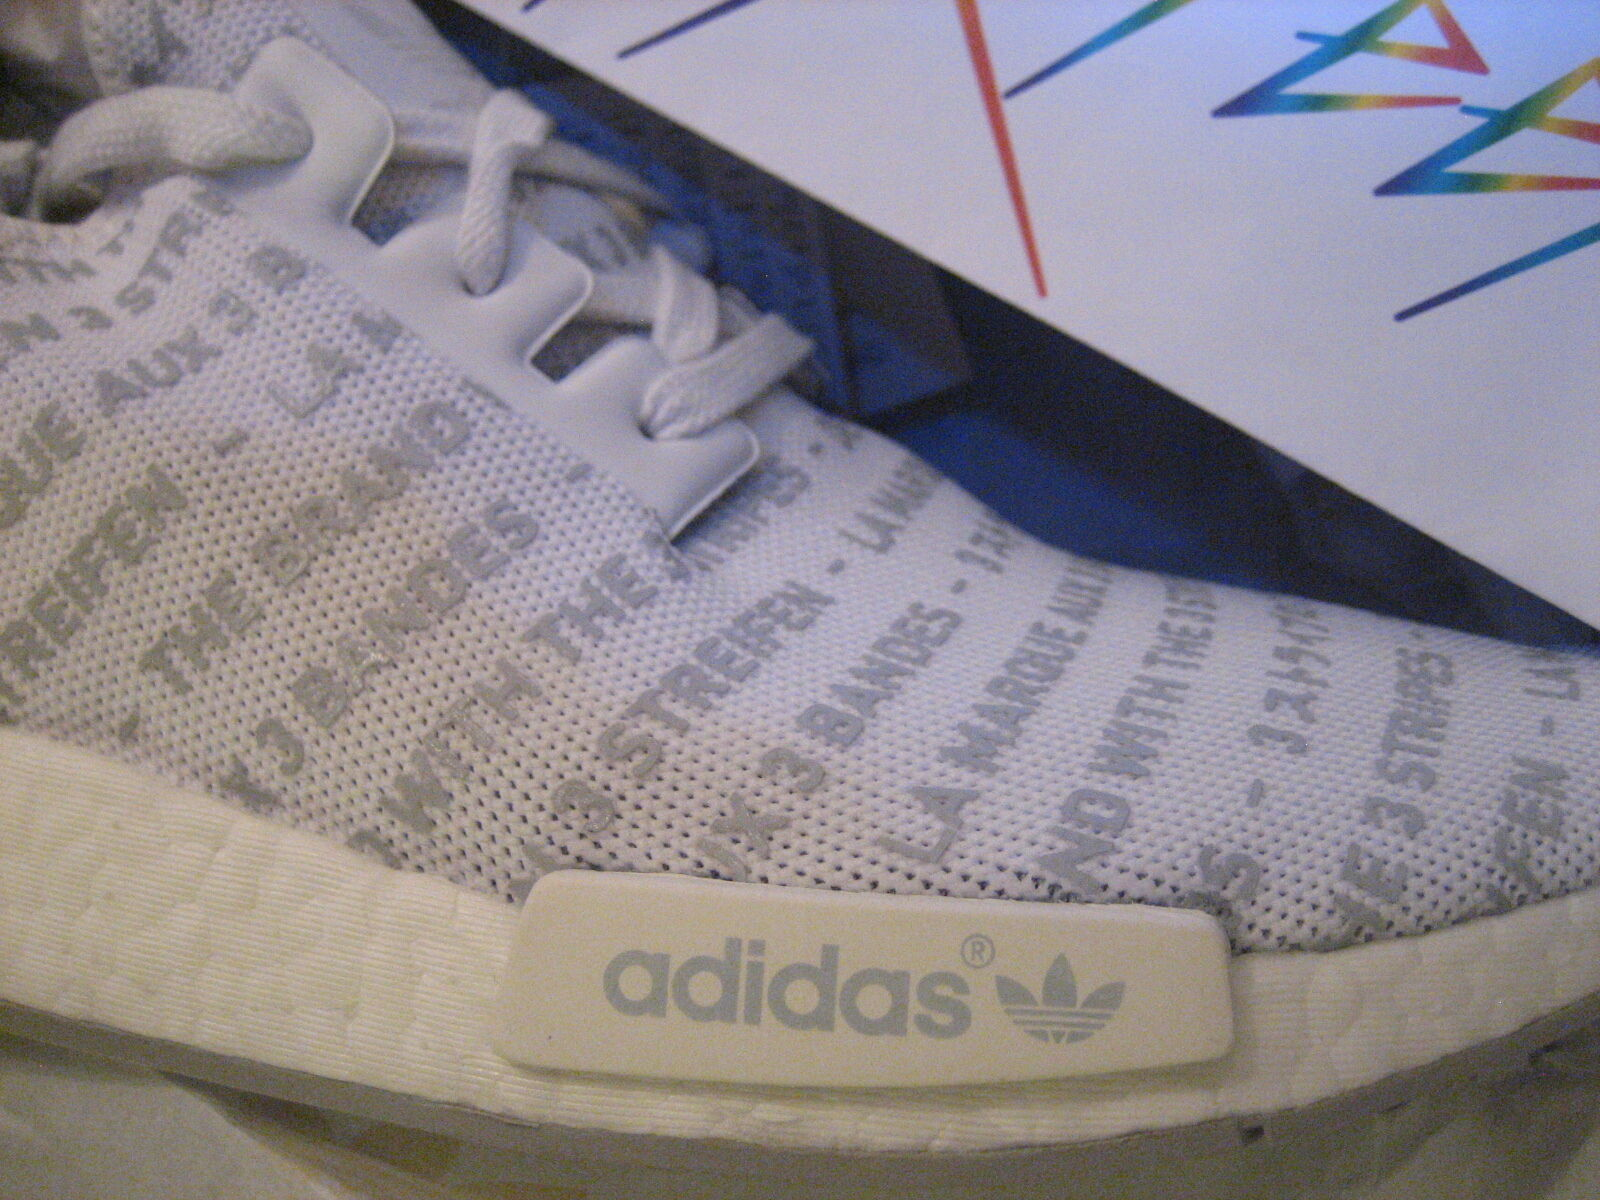 Adidas nmd r1 3 s76518 3 strisce whiteout / white impulso s76518 3 dimensioni: 10,5 & 11 54a181